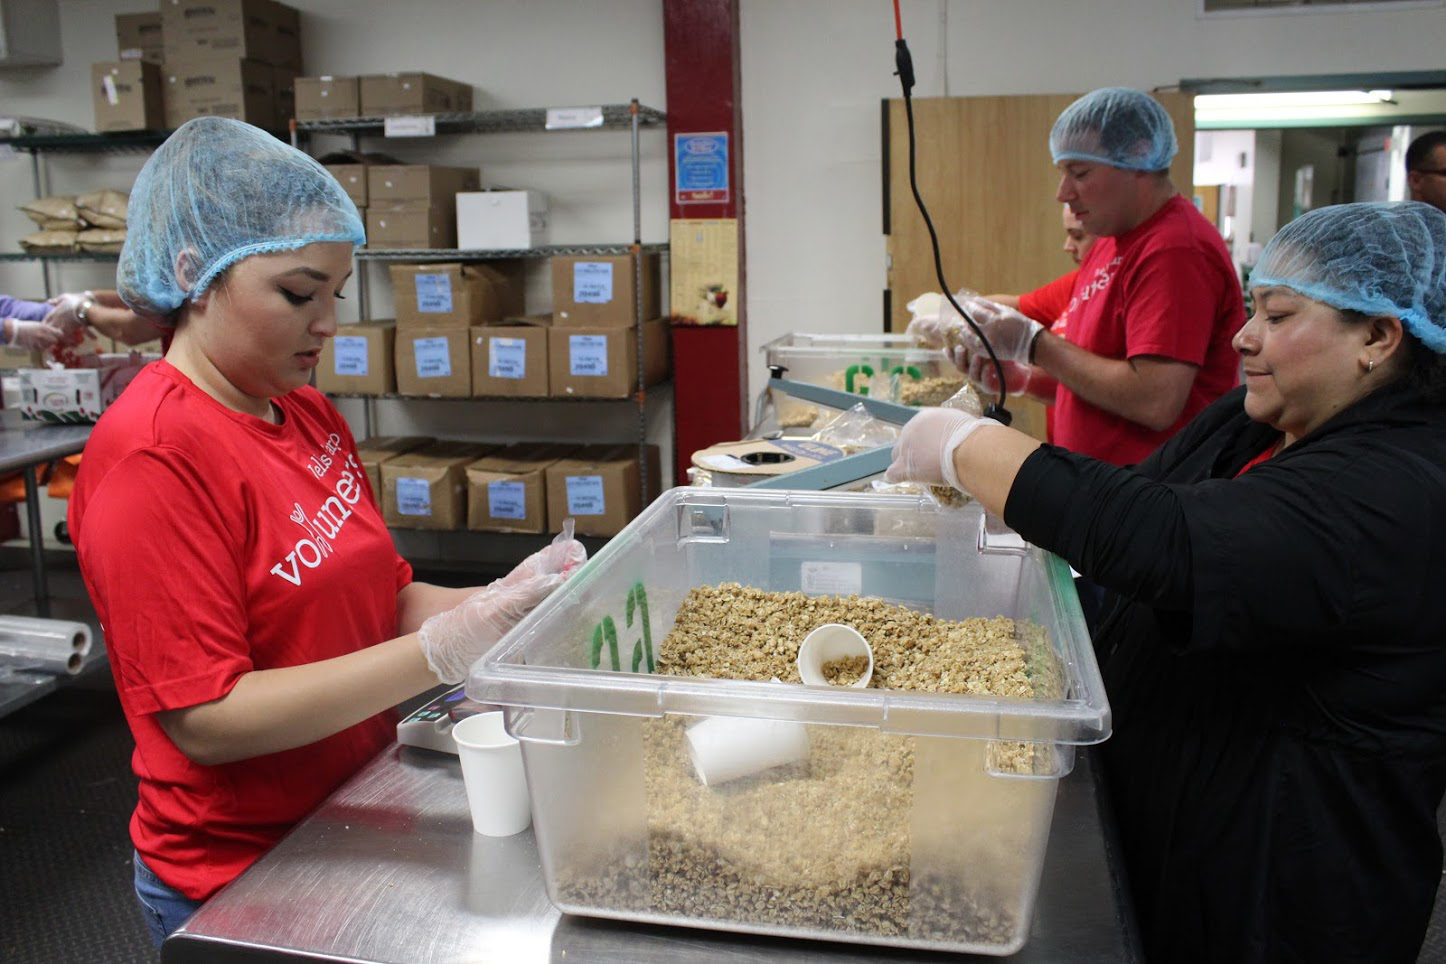 California Funds Nonprofits To Serve Food As Medicine